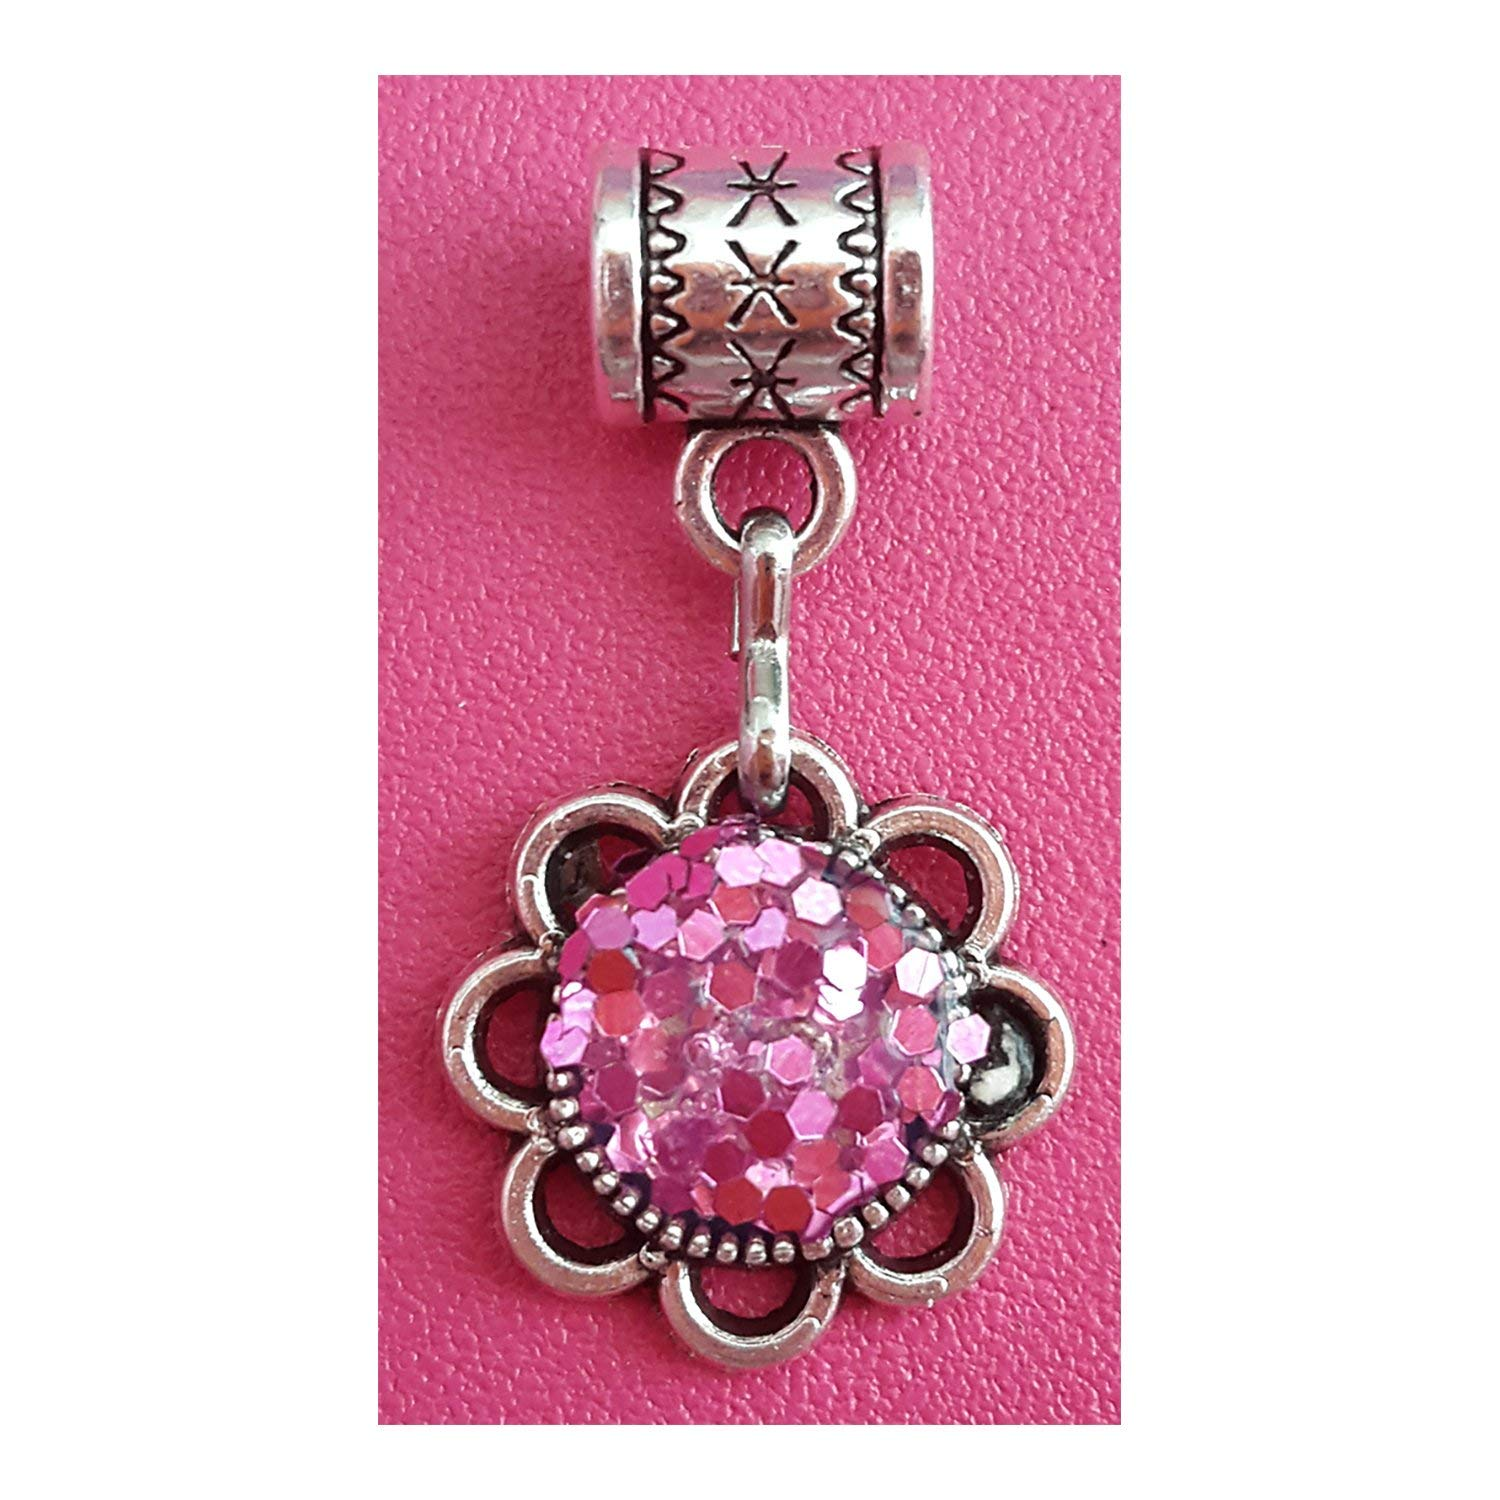 """""""Pink glitter charm"""" Tibetan Silver Hanging charm or October birthstone charm by Mossy Cabin for large hole snake chain charm bracelet, or add to a neck chain, pendant necklace or key chain"""